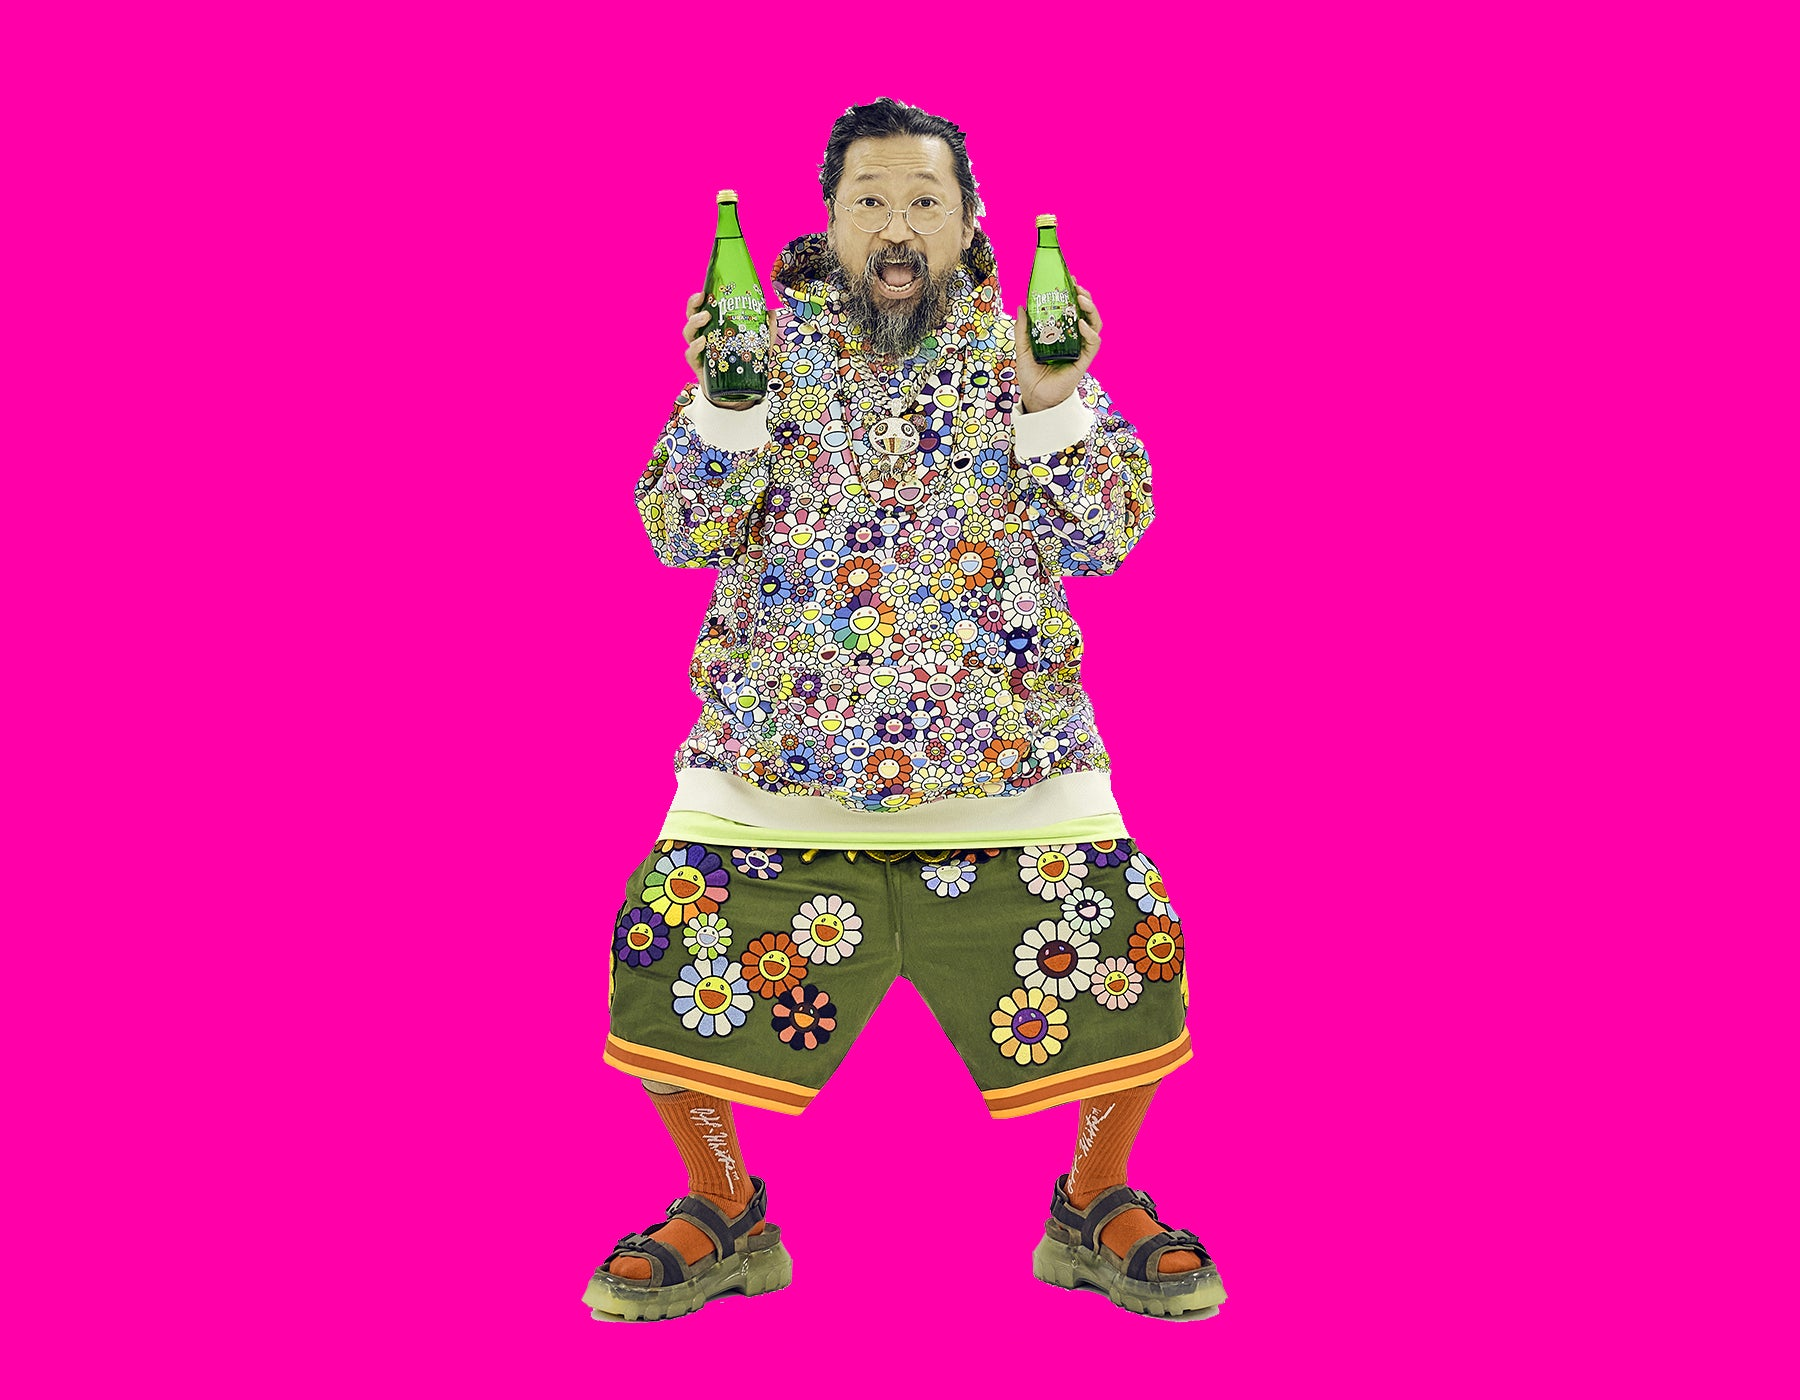 PERRIER® Taps Takashi Murakami For An Exciting New Art Collaboration